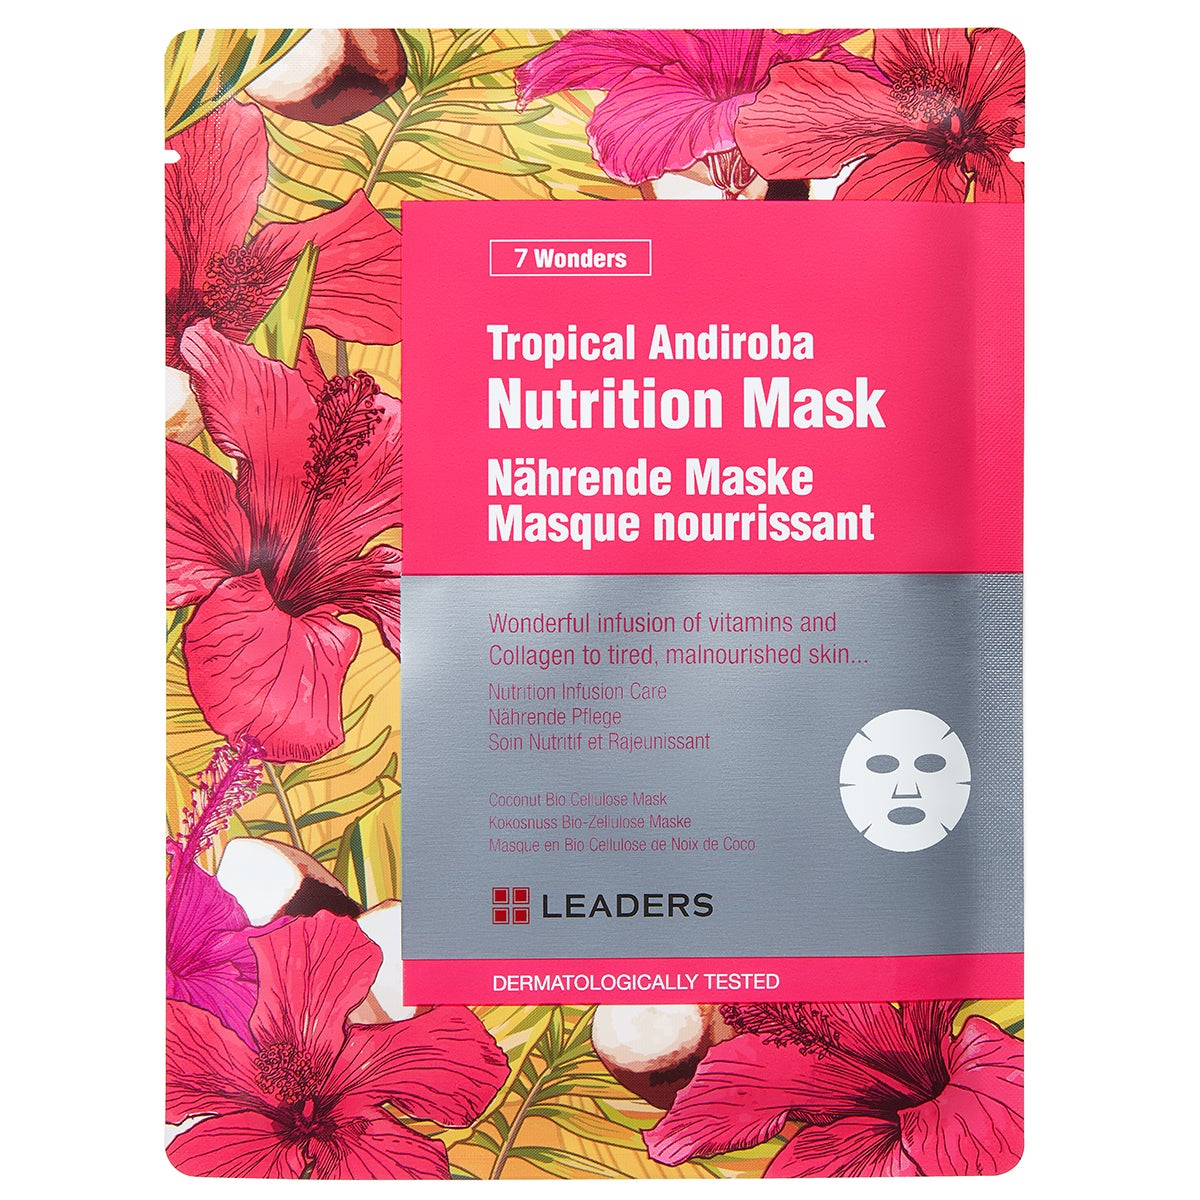 Leaders Tropical Andiroba Nutrition Mask